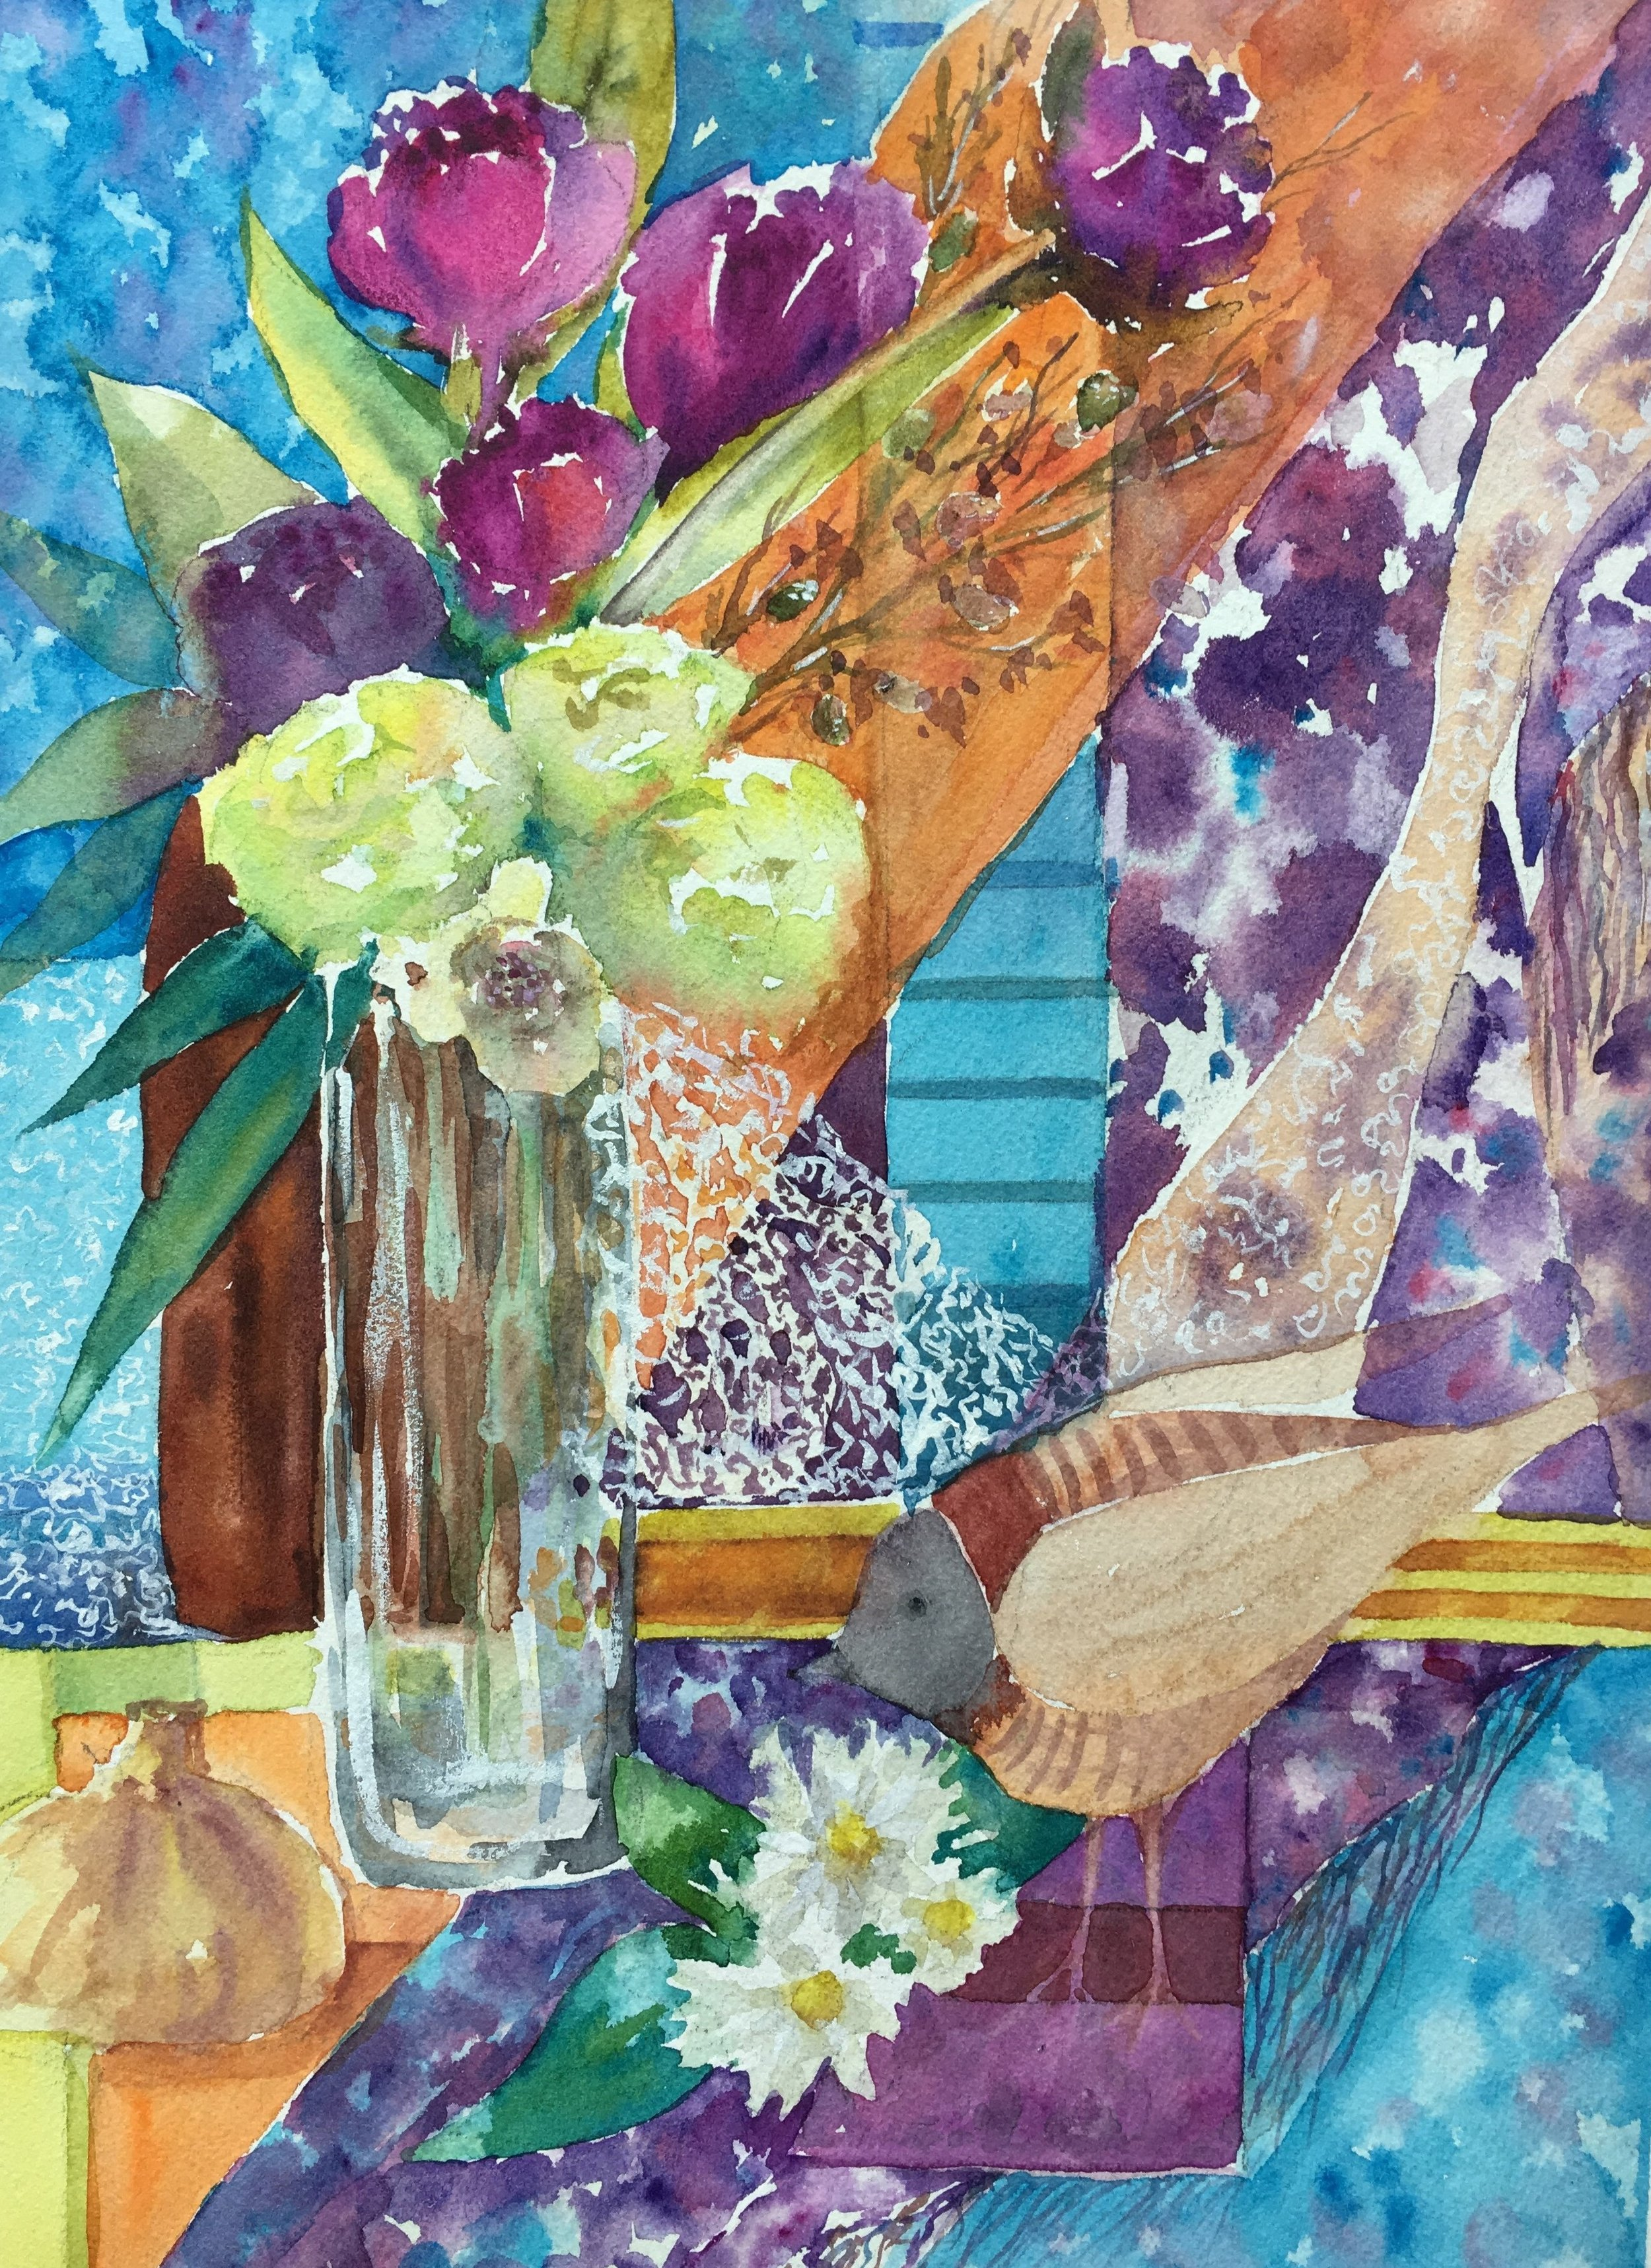 """""""Bird and curtains""""16x20. Watercolor on watercolor paper by Svetlana Howe"""